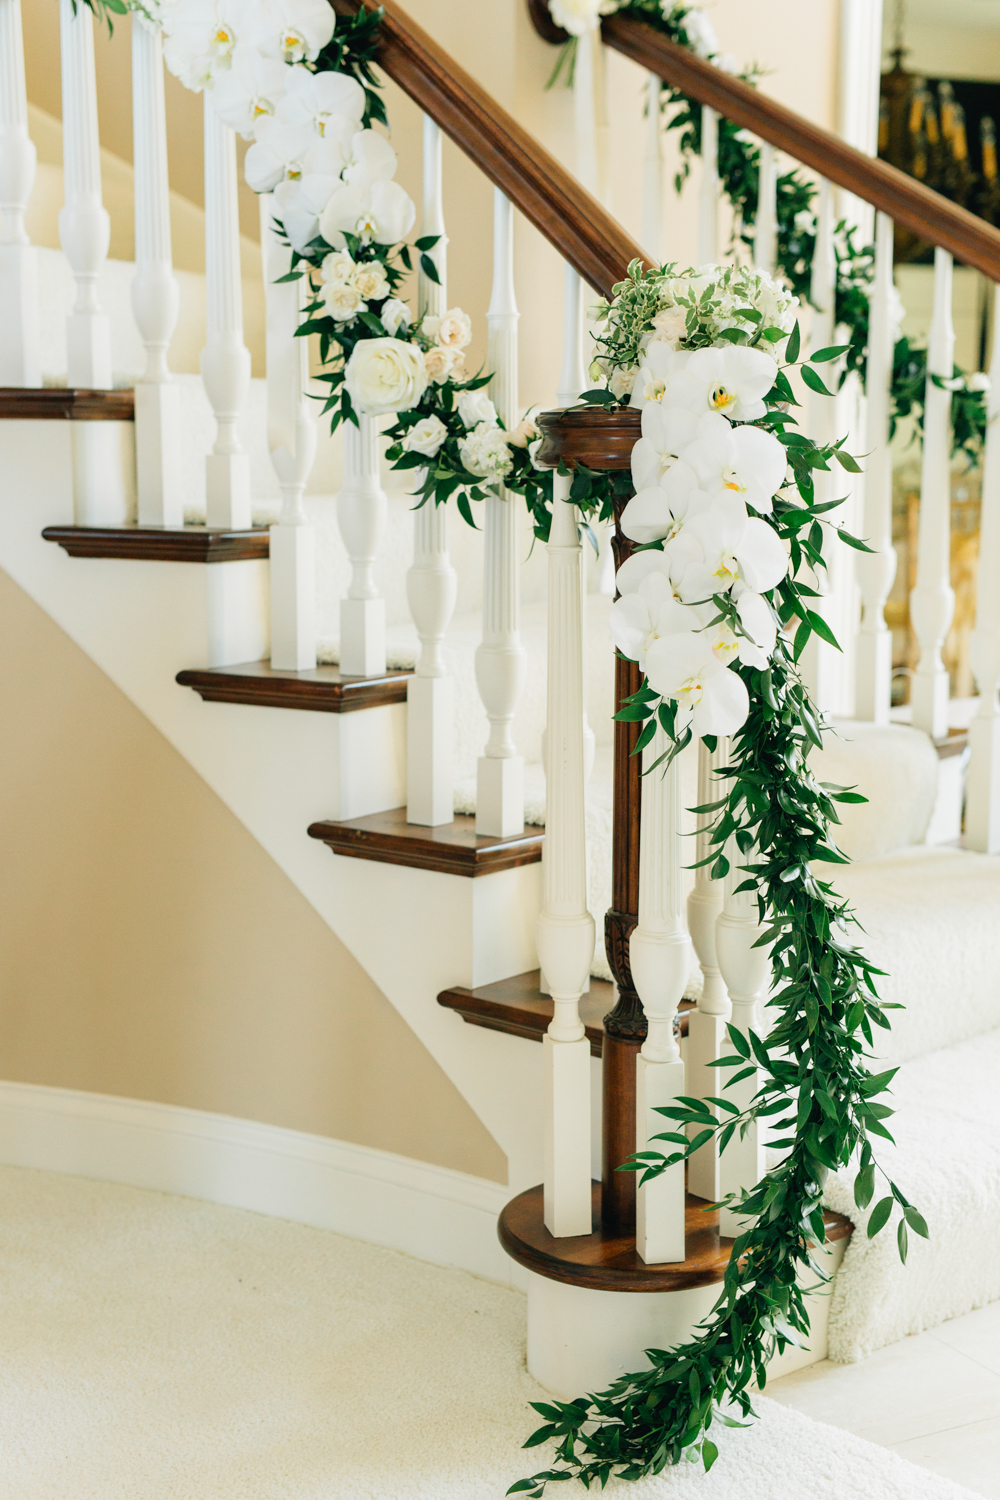 West Michigan Wedding Beautiful Staircase with Flowers